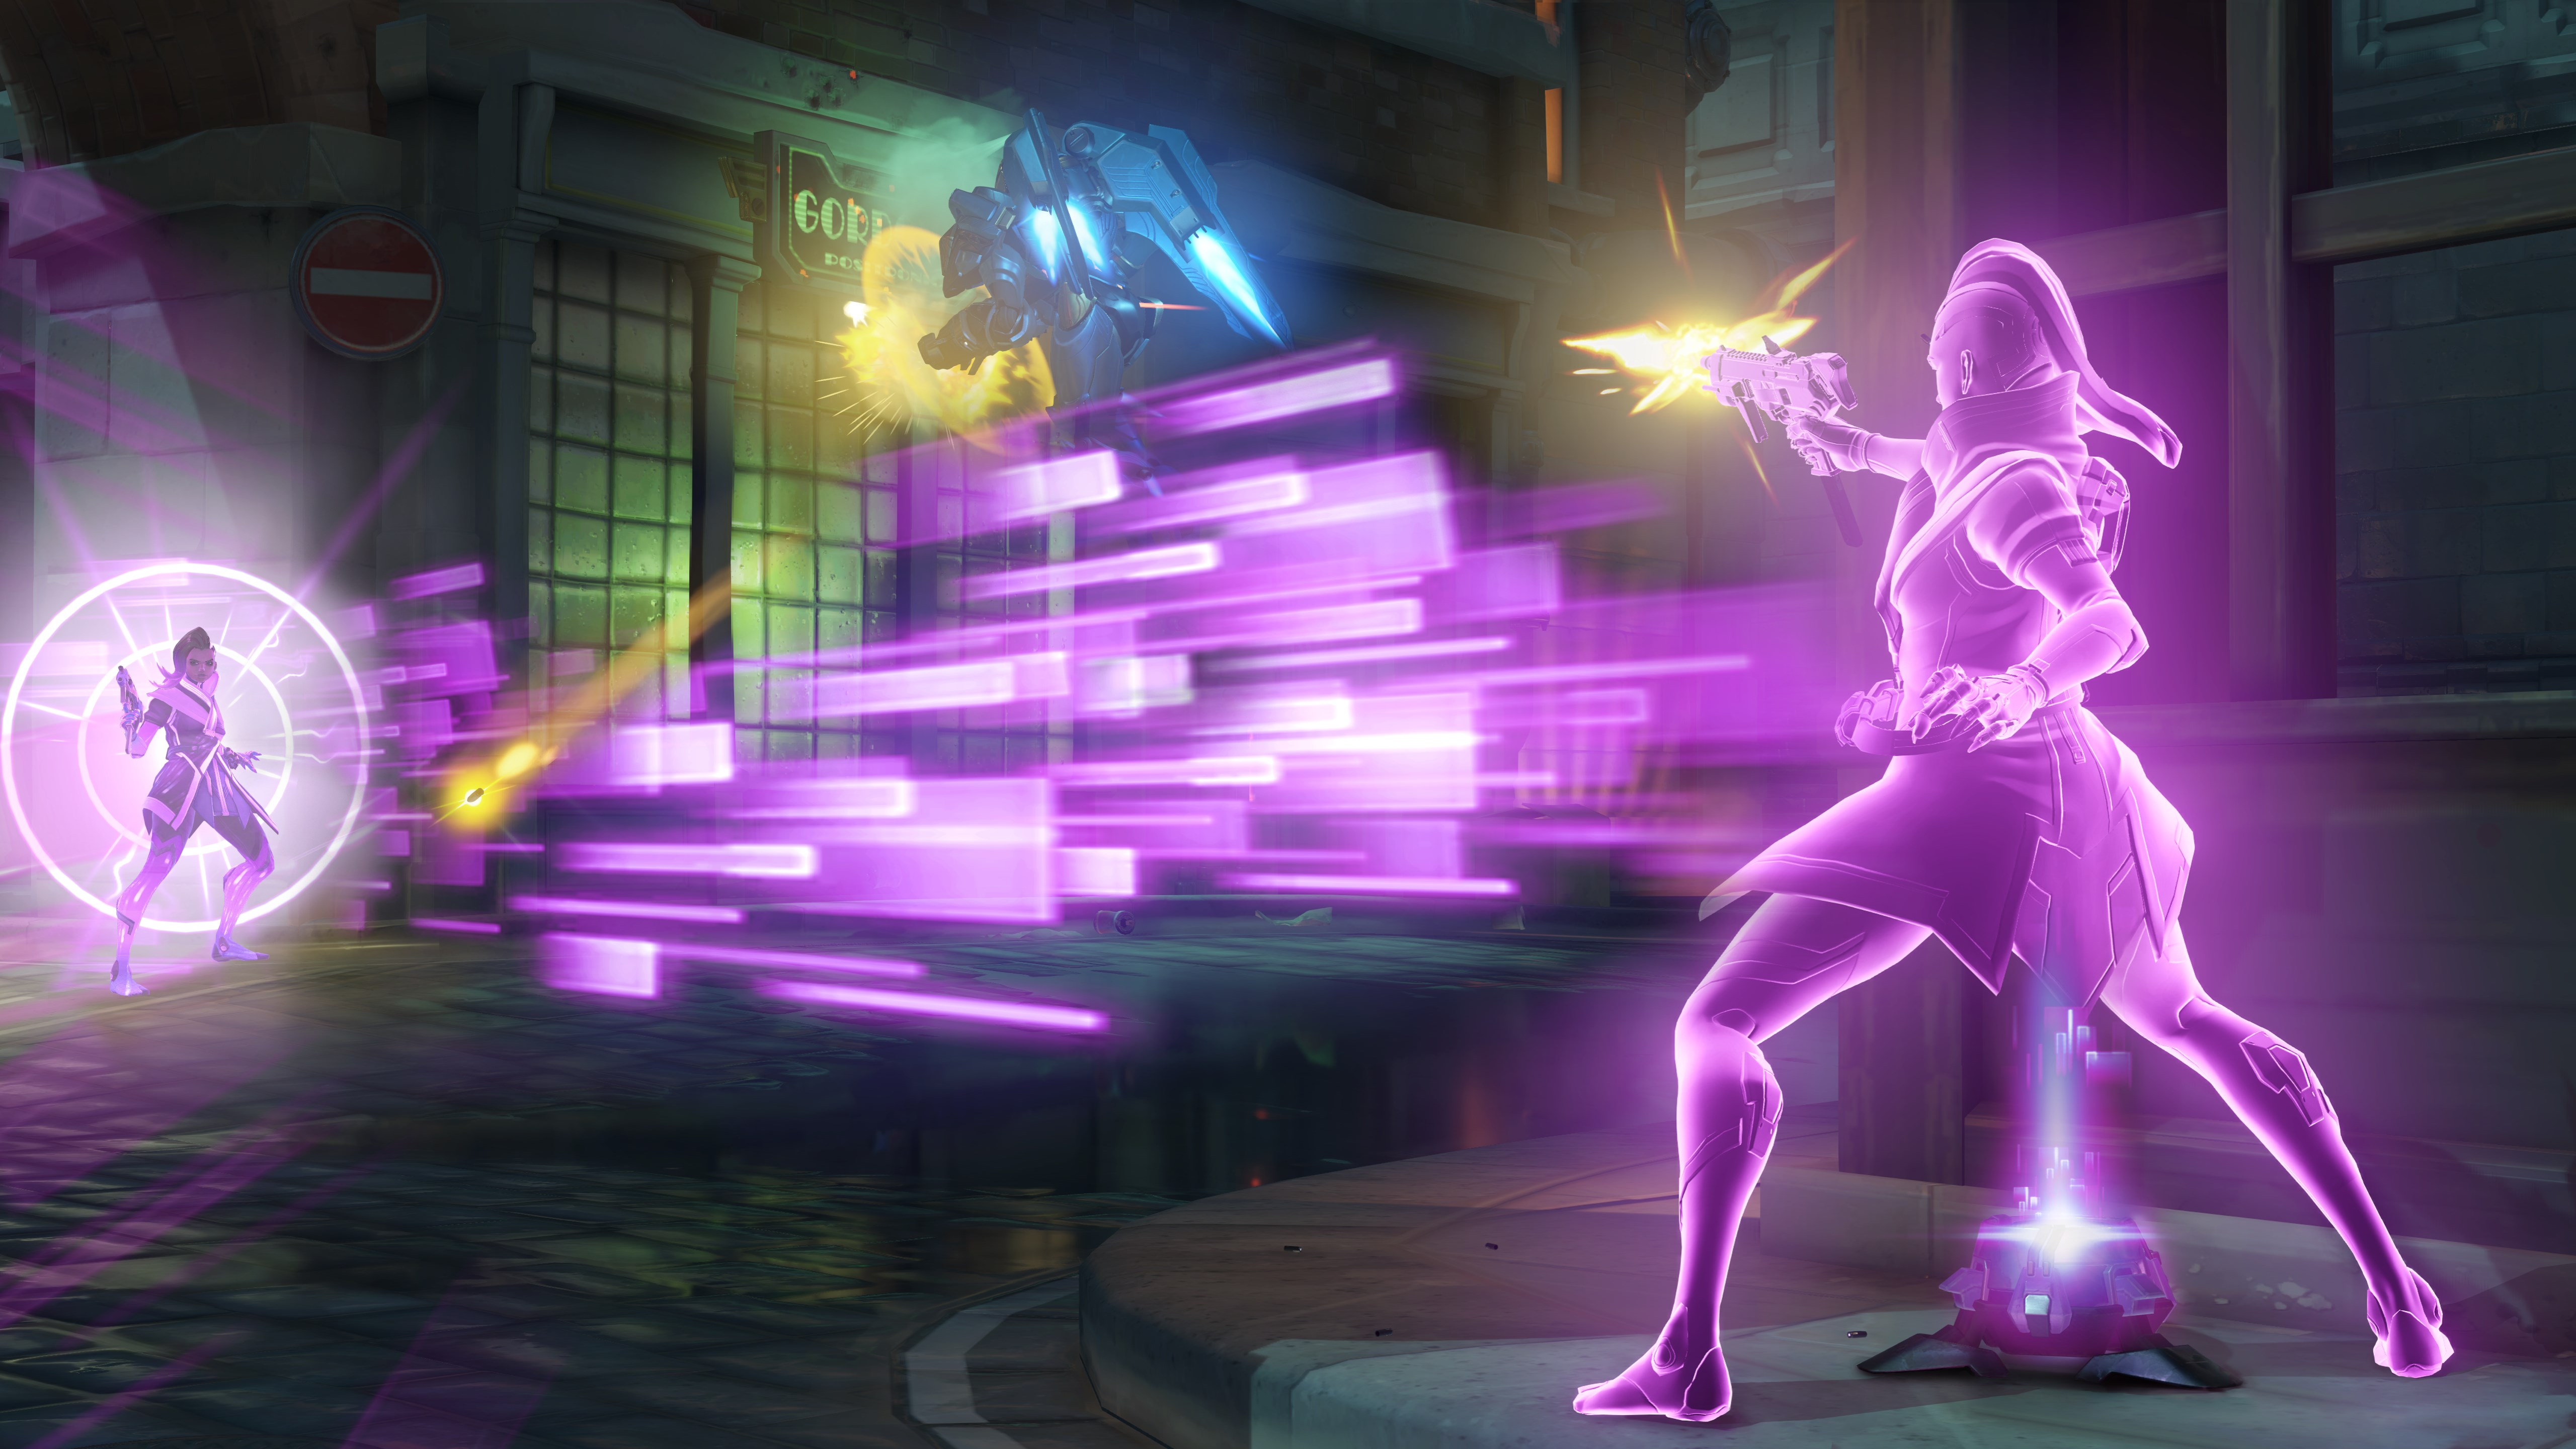 Sombra Overwatch Guide - Strengths, Weaknesses, and Tips